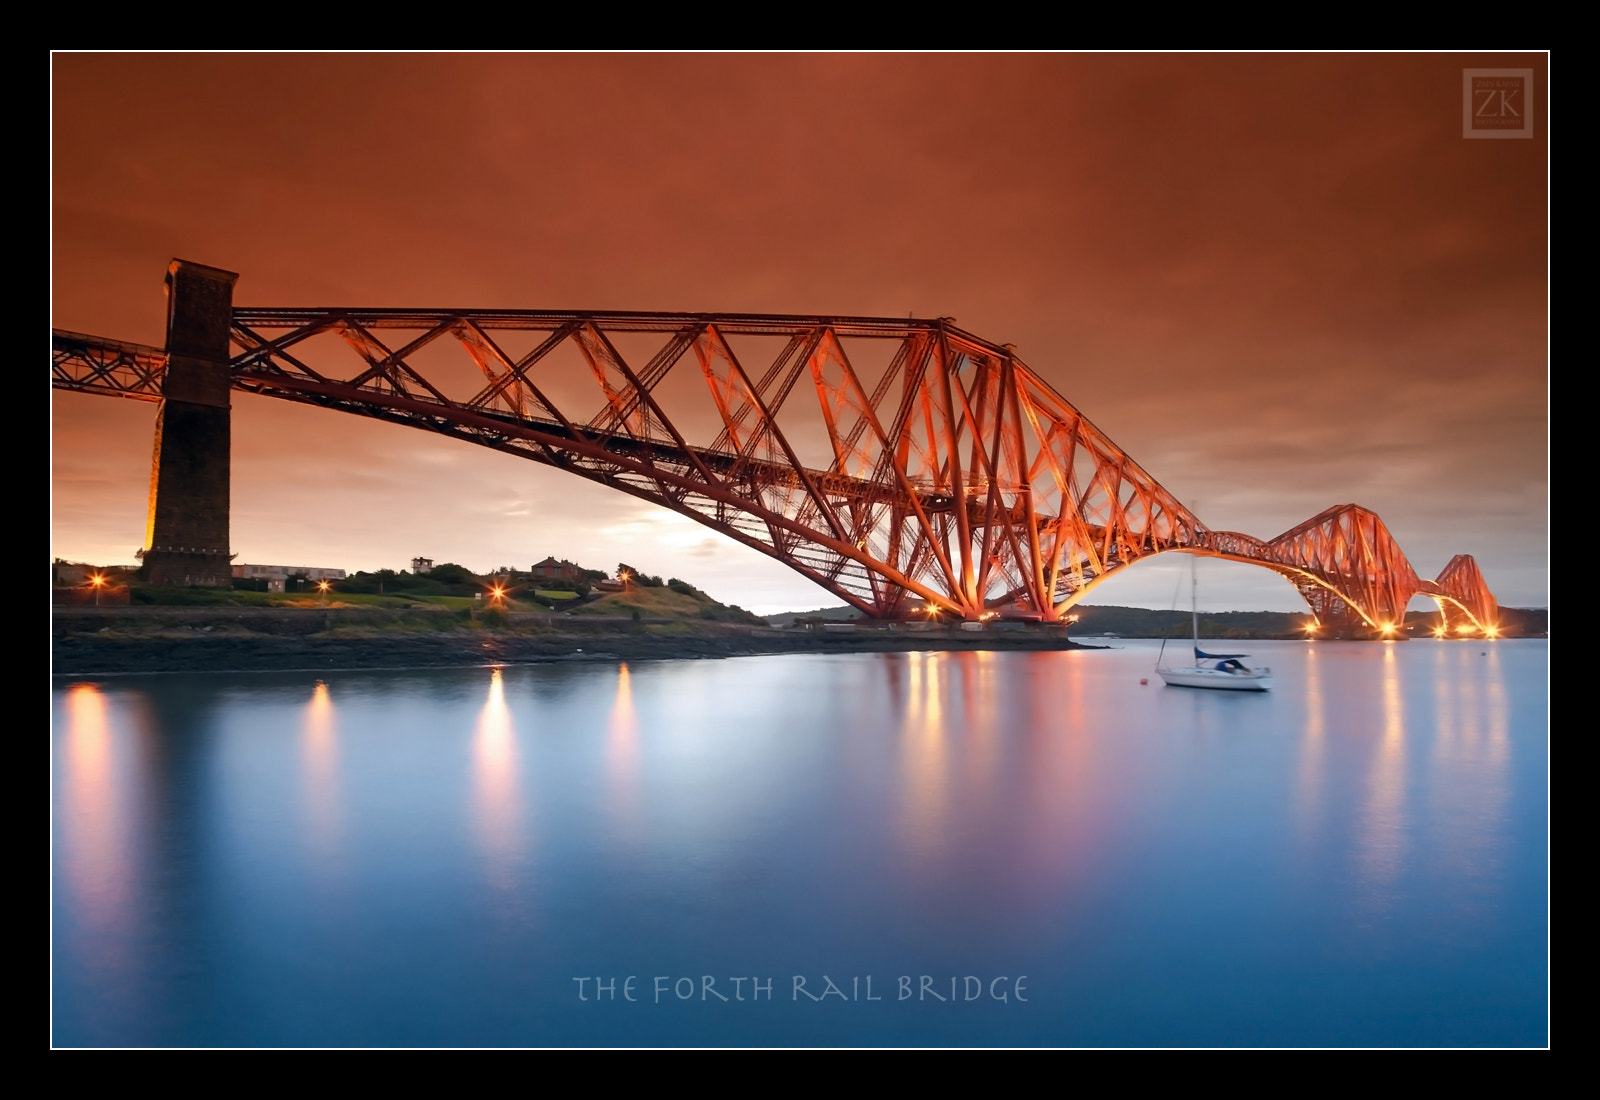 Photograph The Forth Rail Bridge by Zain Kapasi on 500px